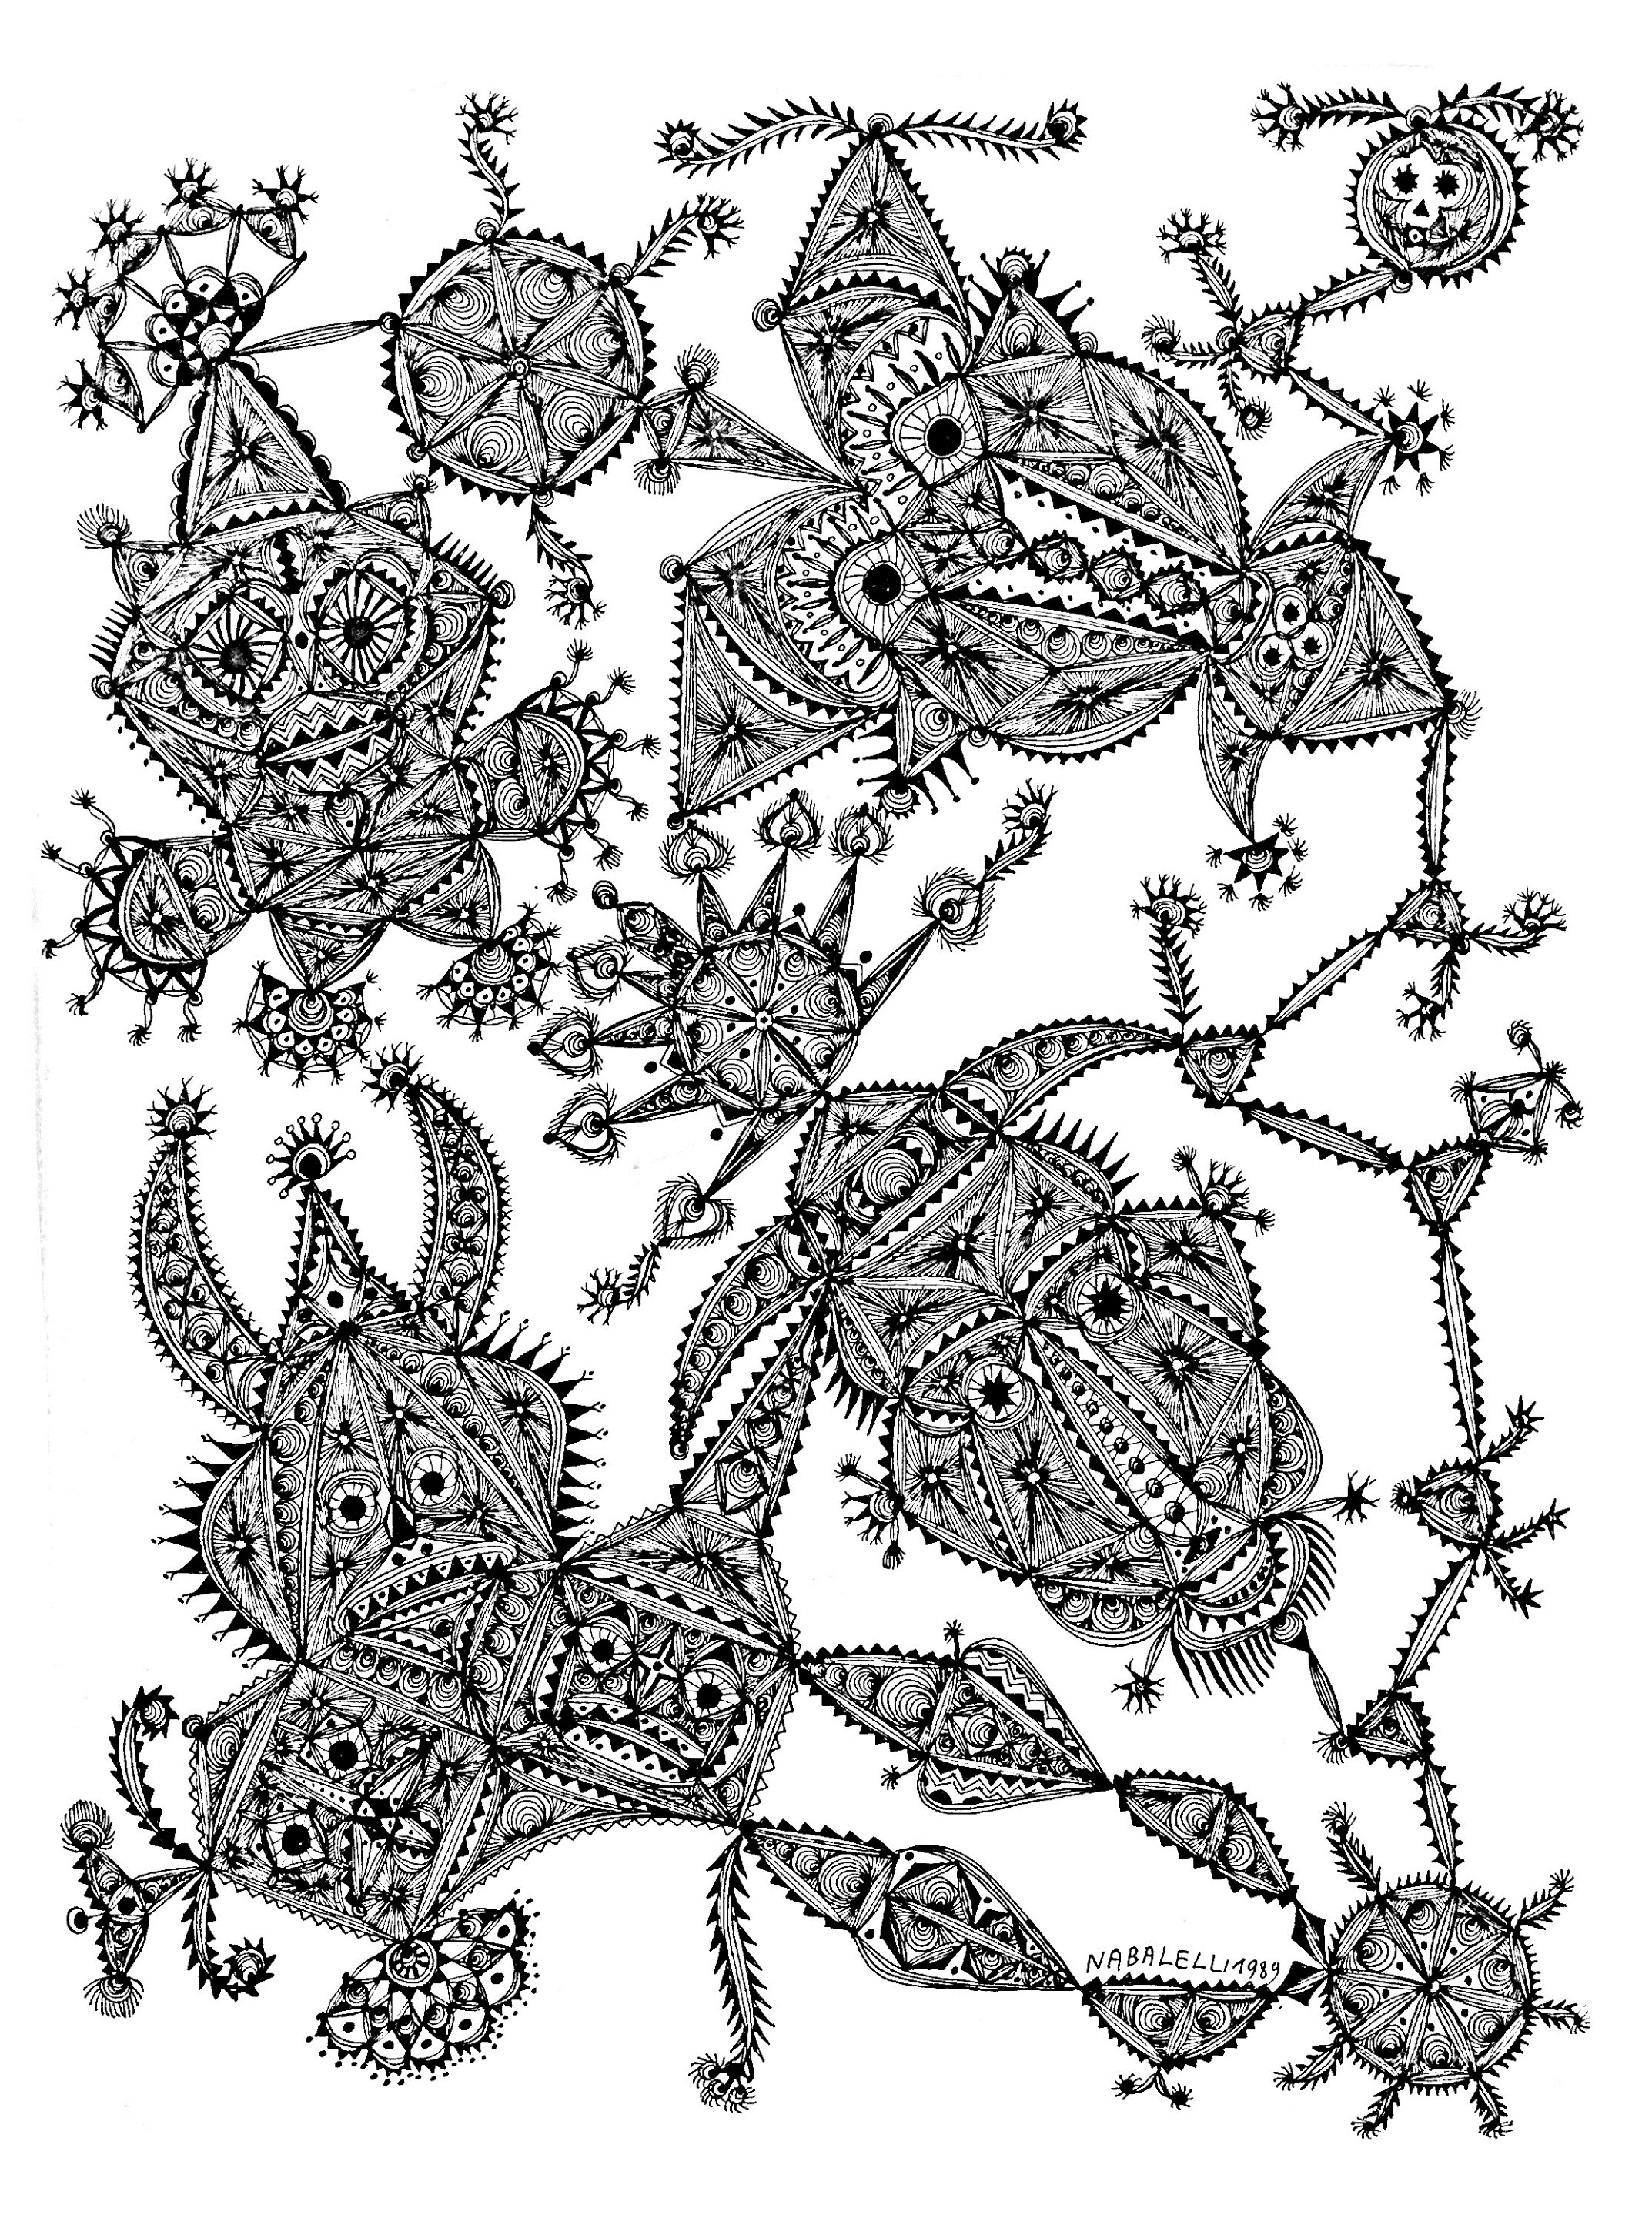 Difficult coloring page for adult, made with a picture by Marc Lamy